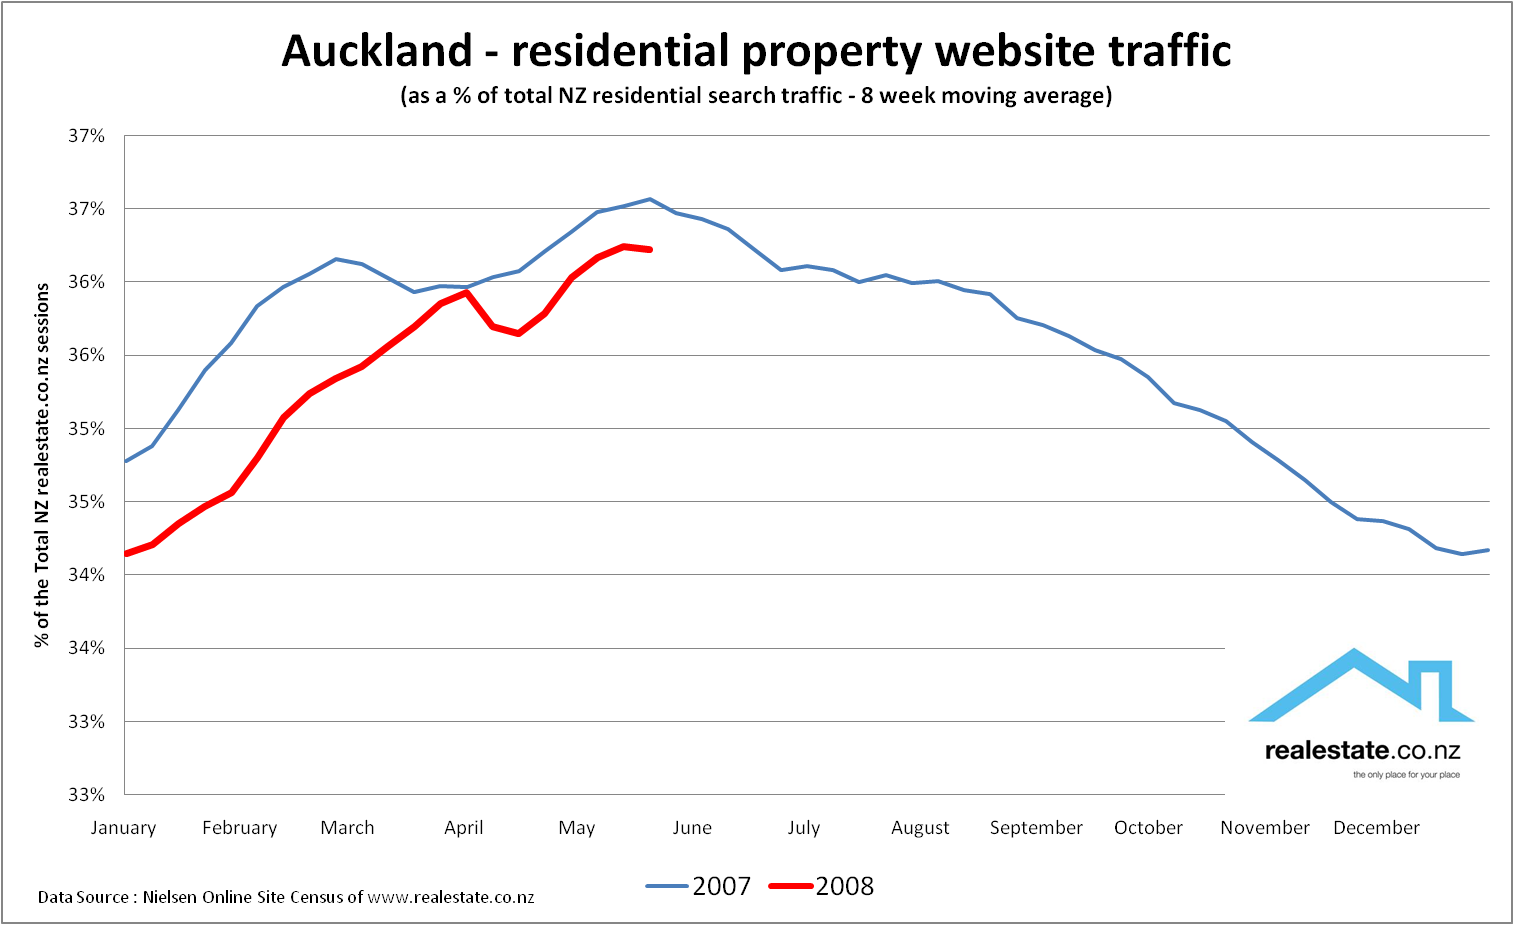 Auckland property web traffic - May 08 realestate.co.nz